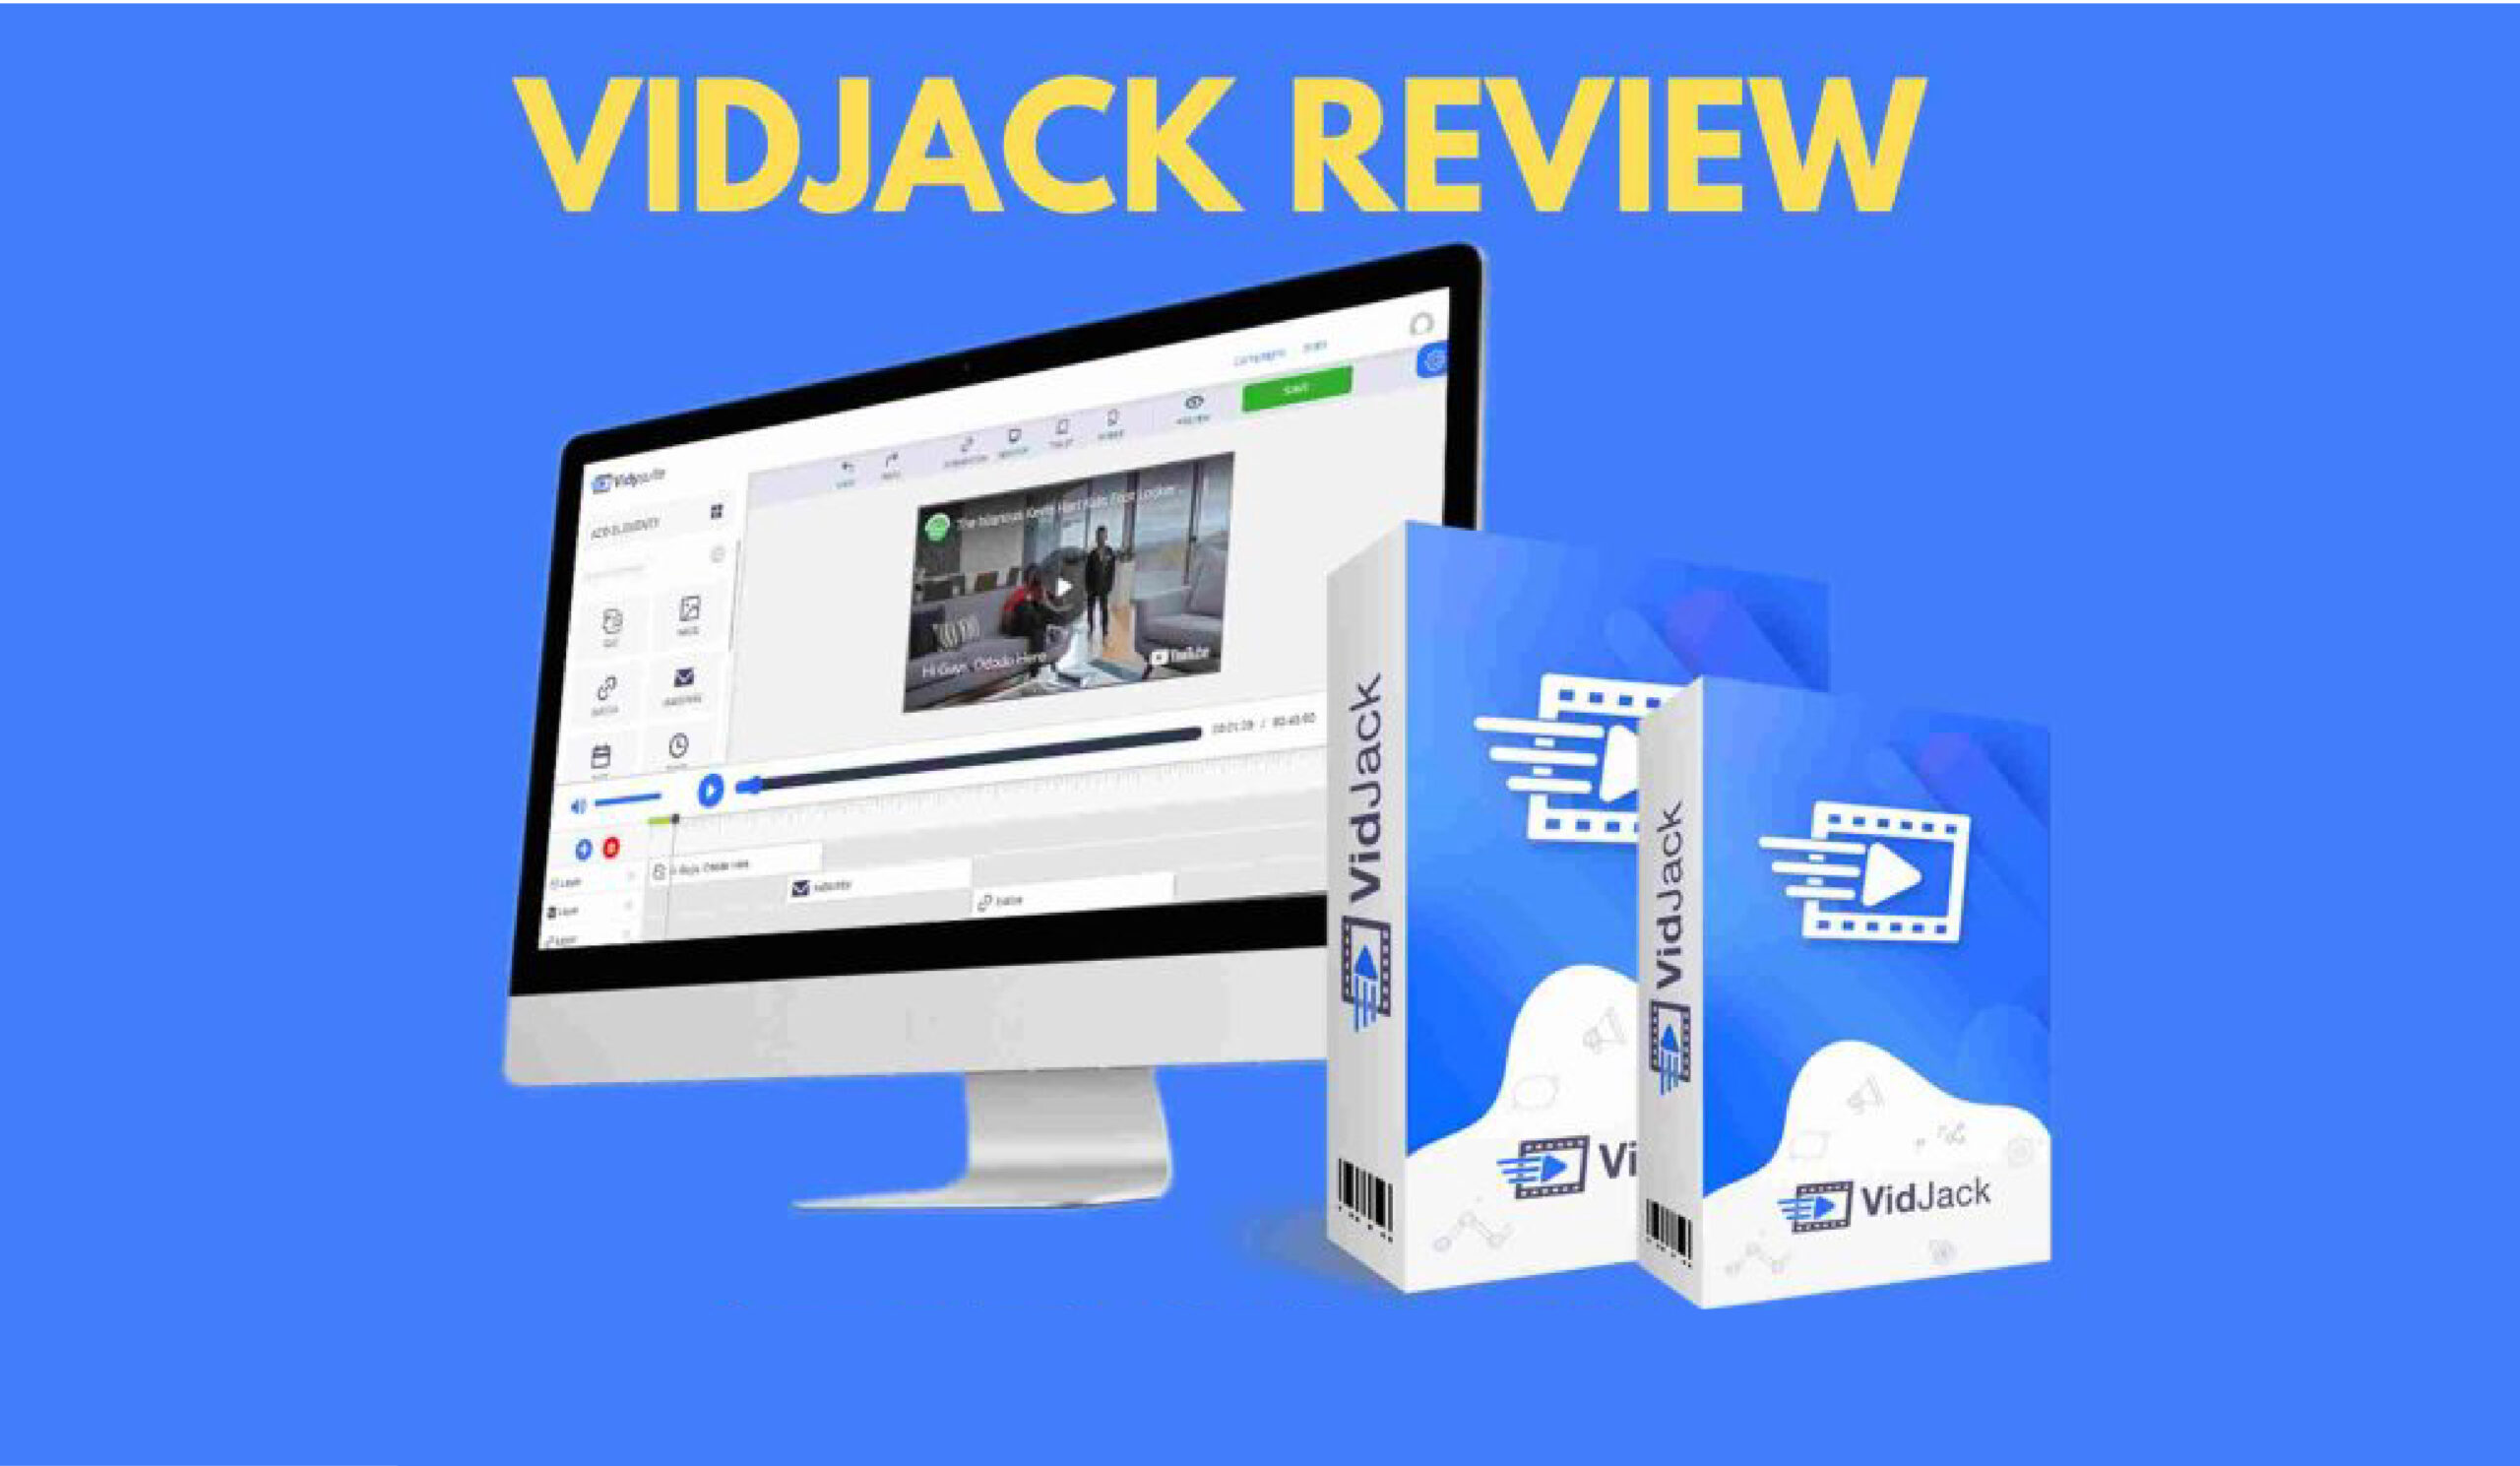 VIDJACK Review 2021